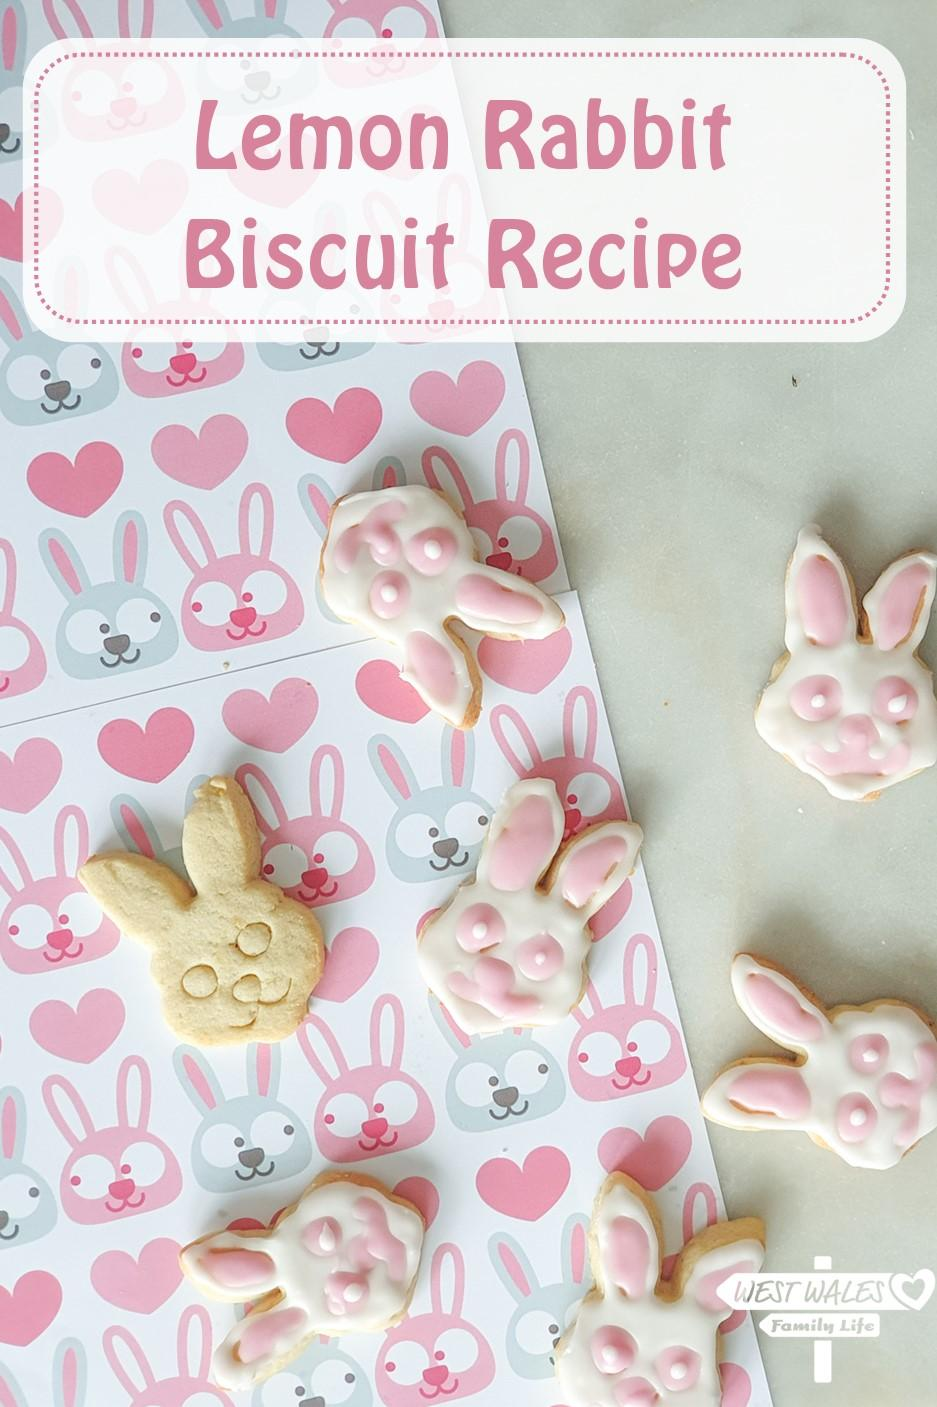 Lemon Rabbit Biscuit Recipe on Pinterest